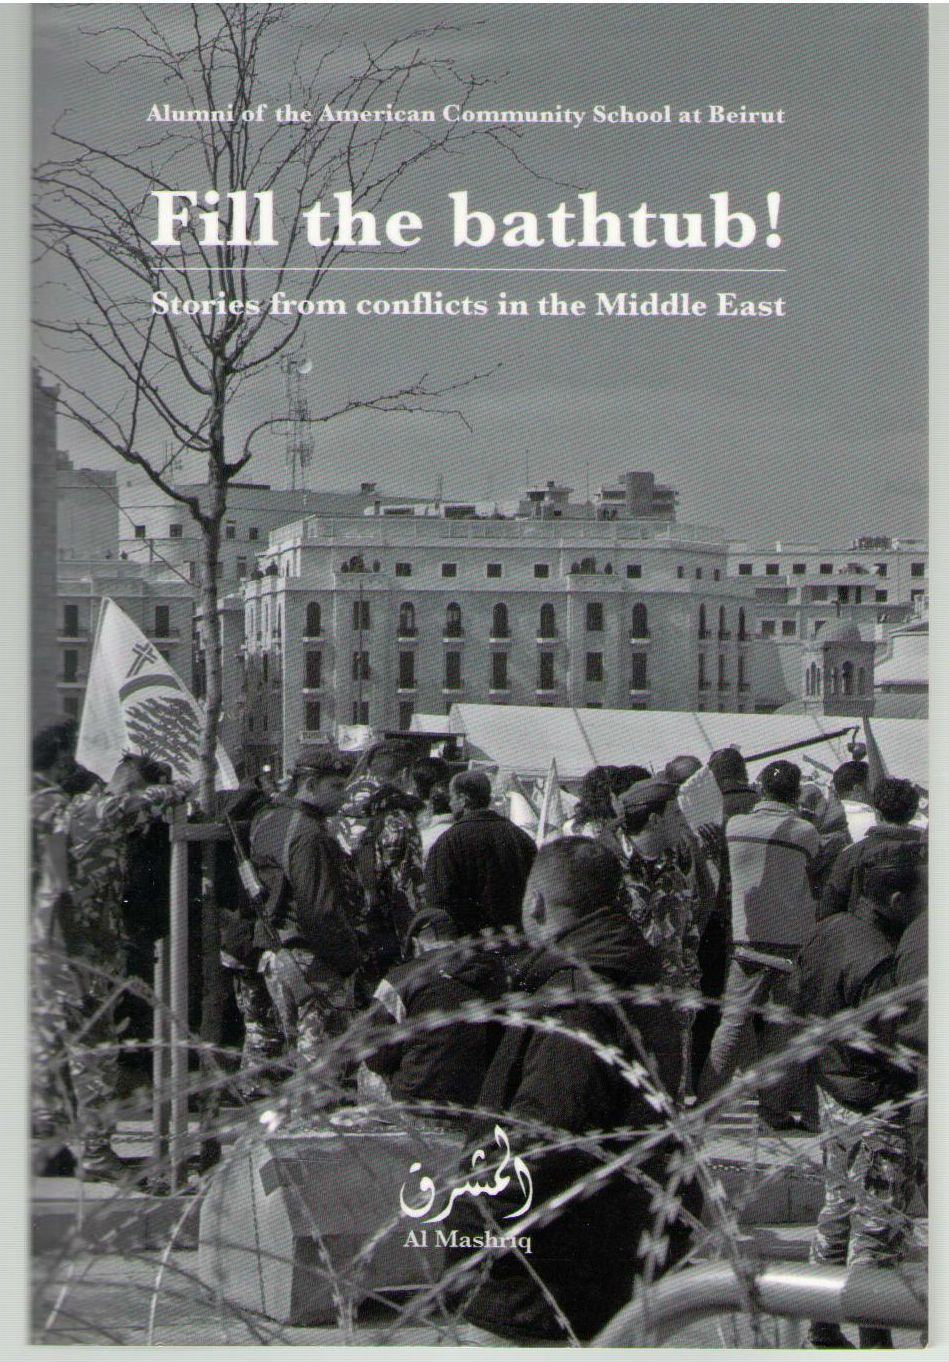 Fill The Bathtub! Stories from the conflicts in the middle east, Al Mashriq